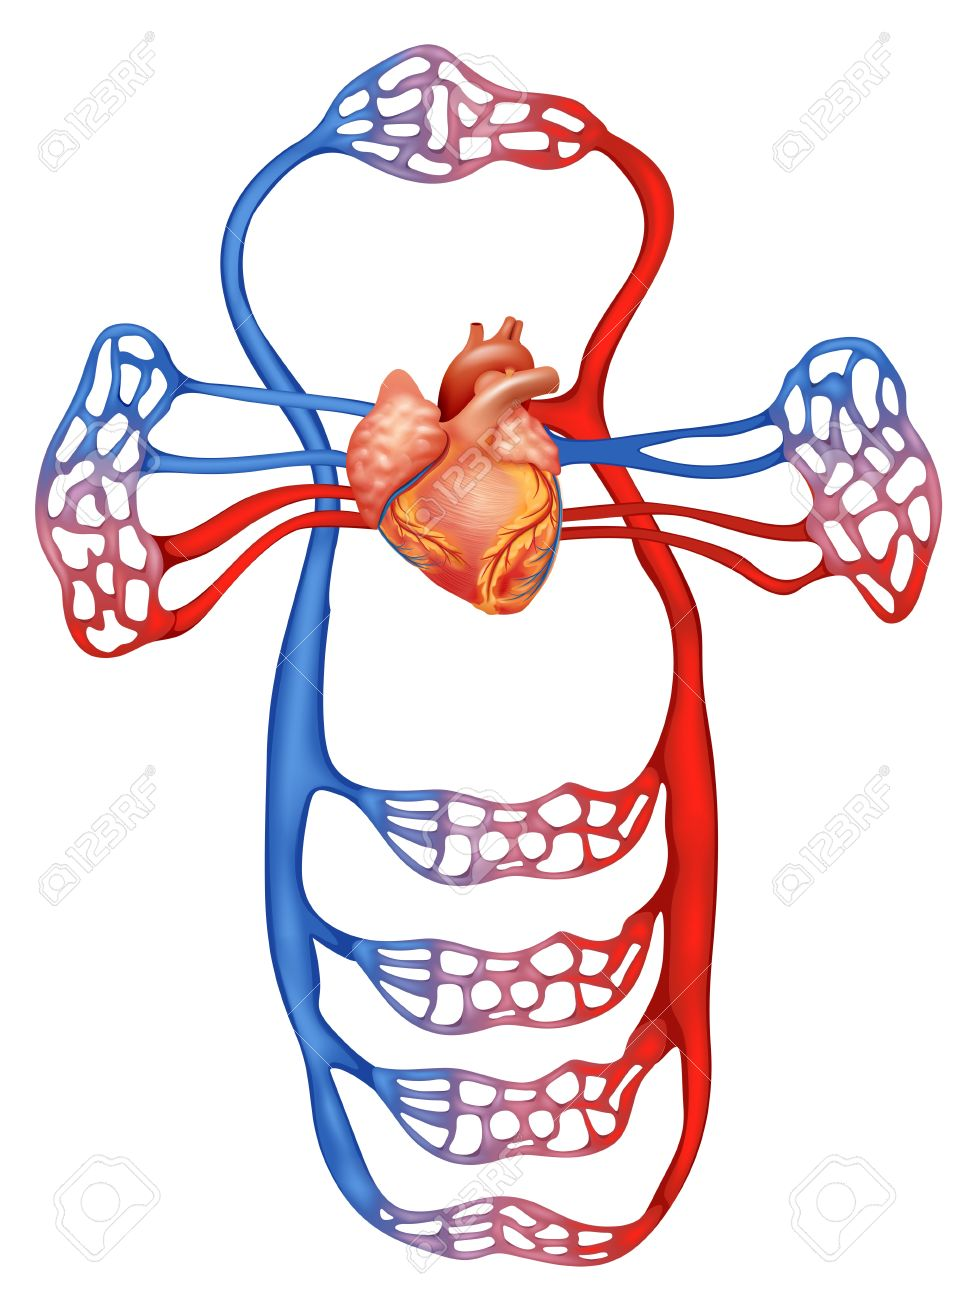 illustration showing the circulatory system royalty free cliparts rh 123rf com